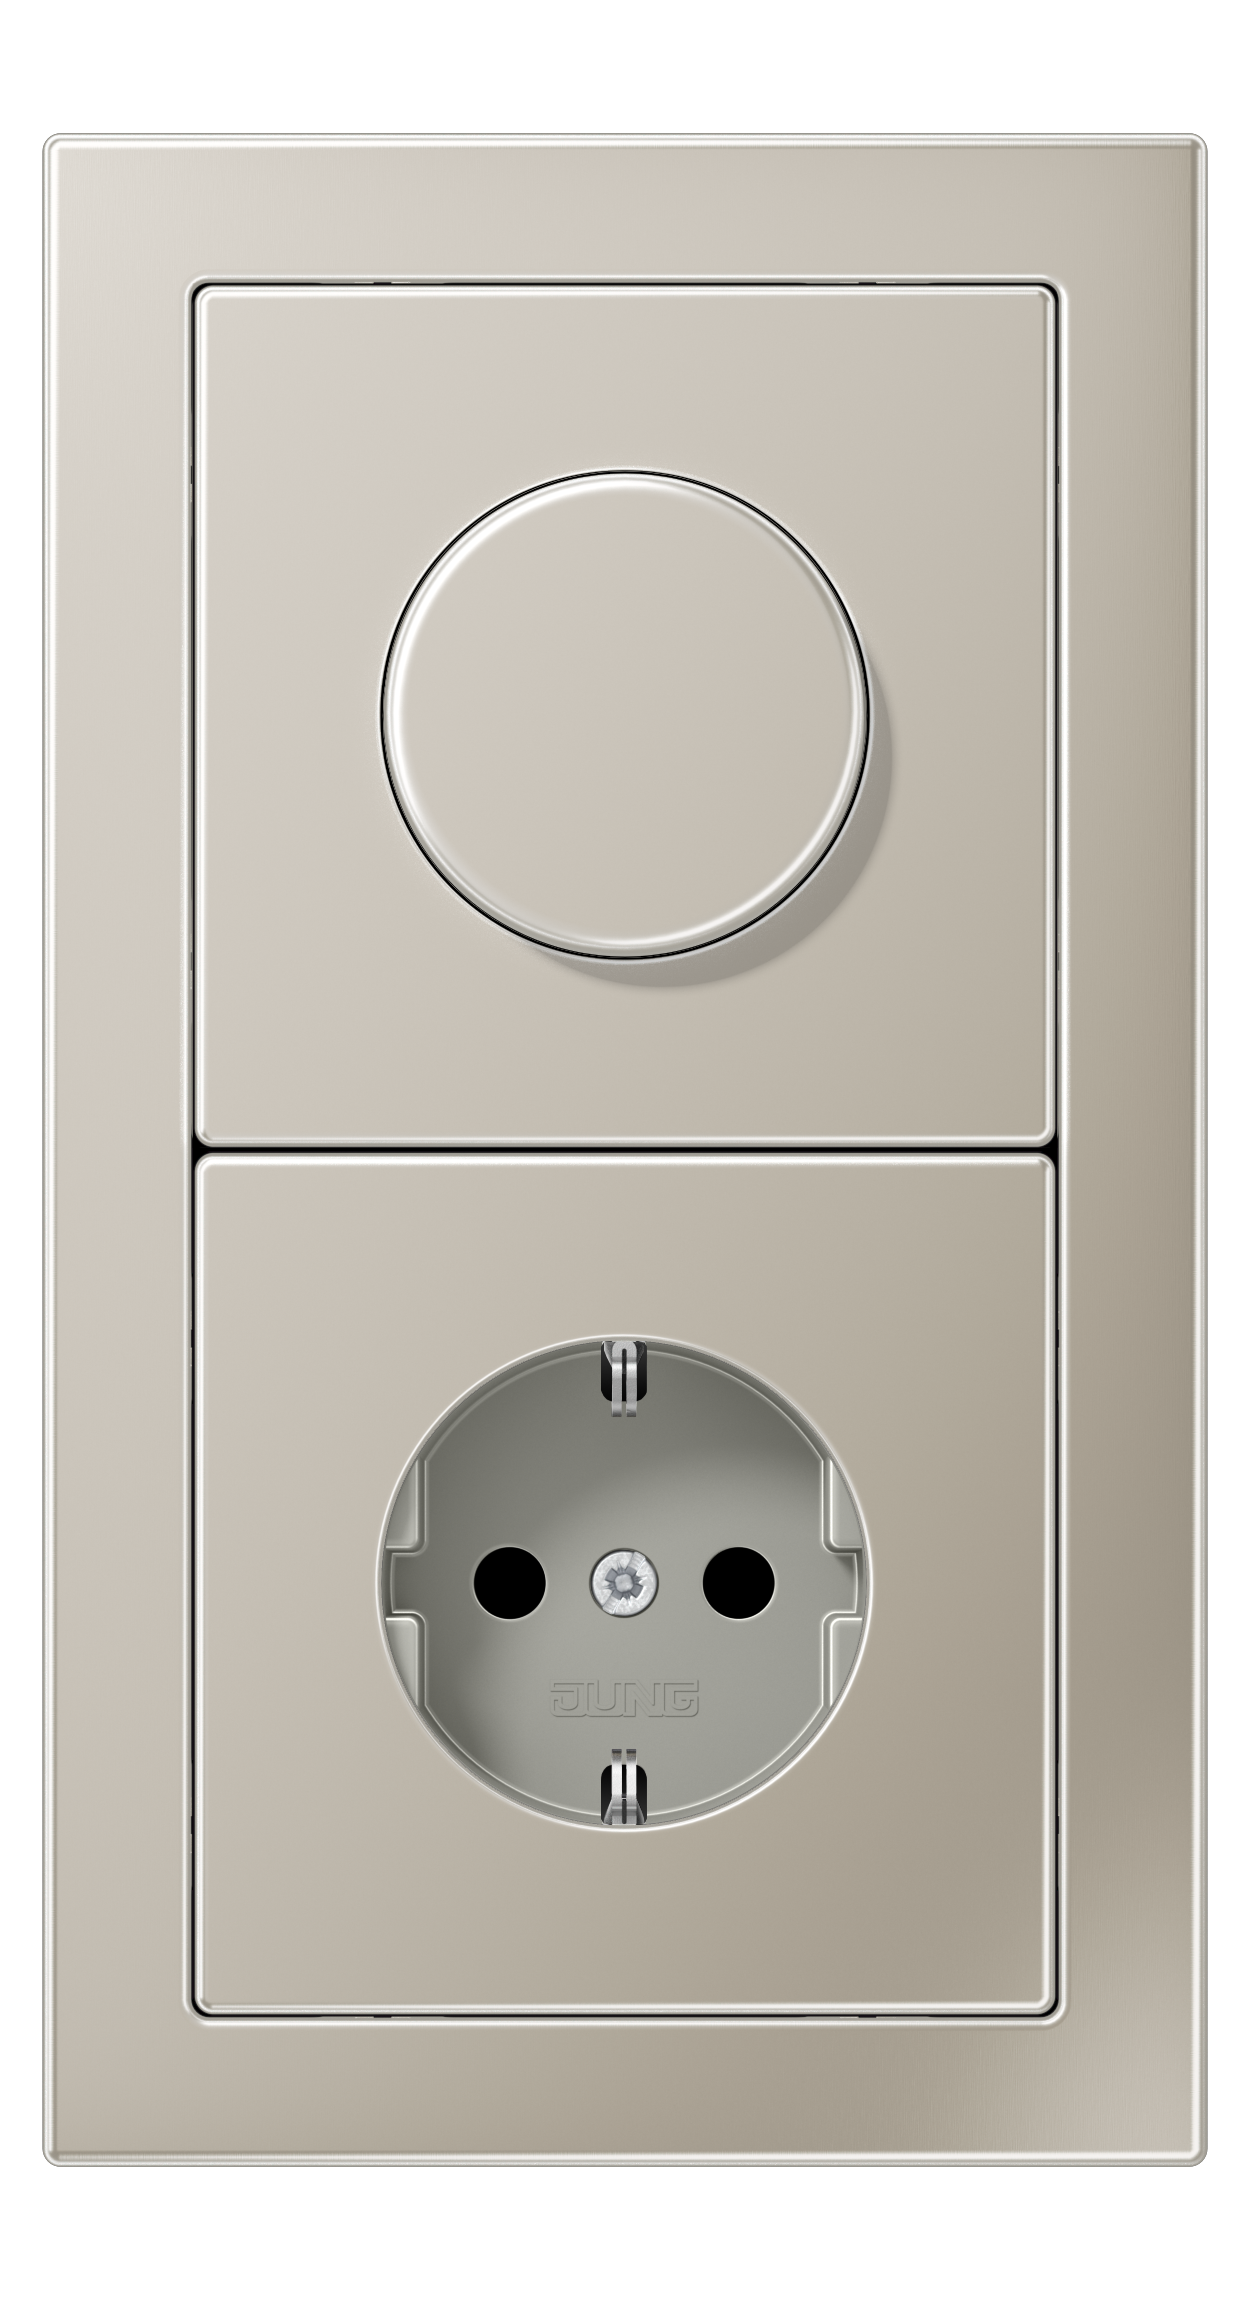 JUNG_LS_Design_stainless_steel_dimmer-socket